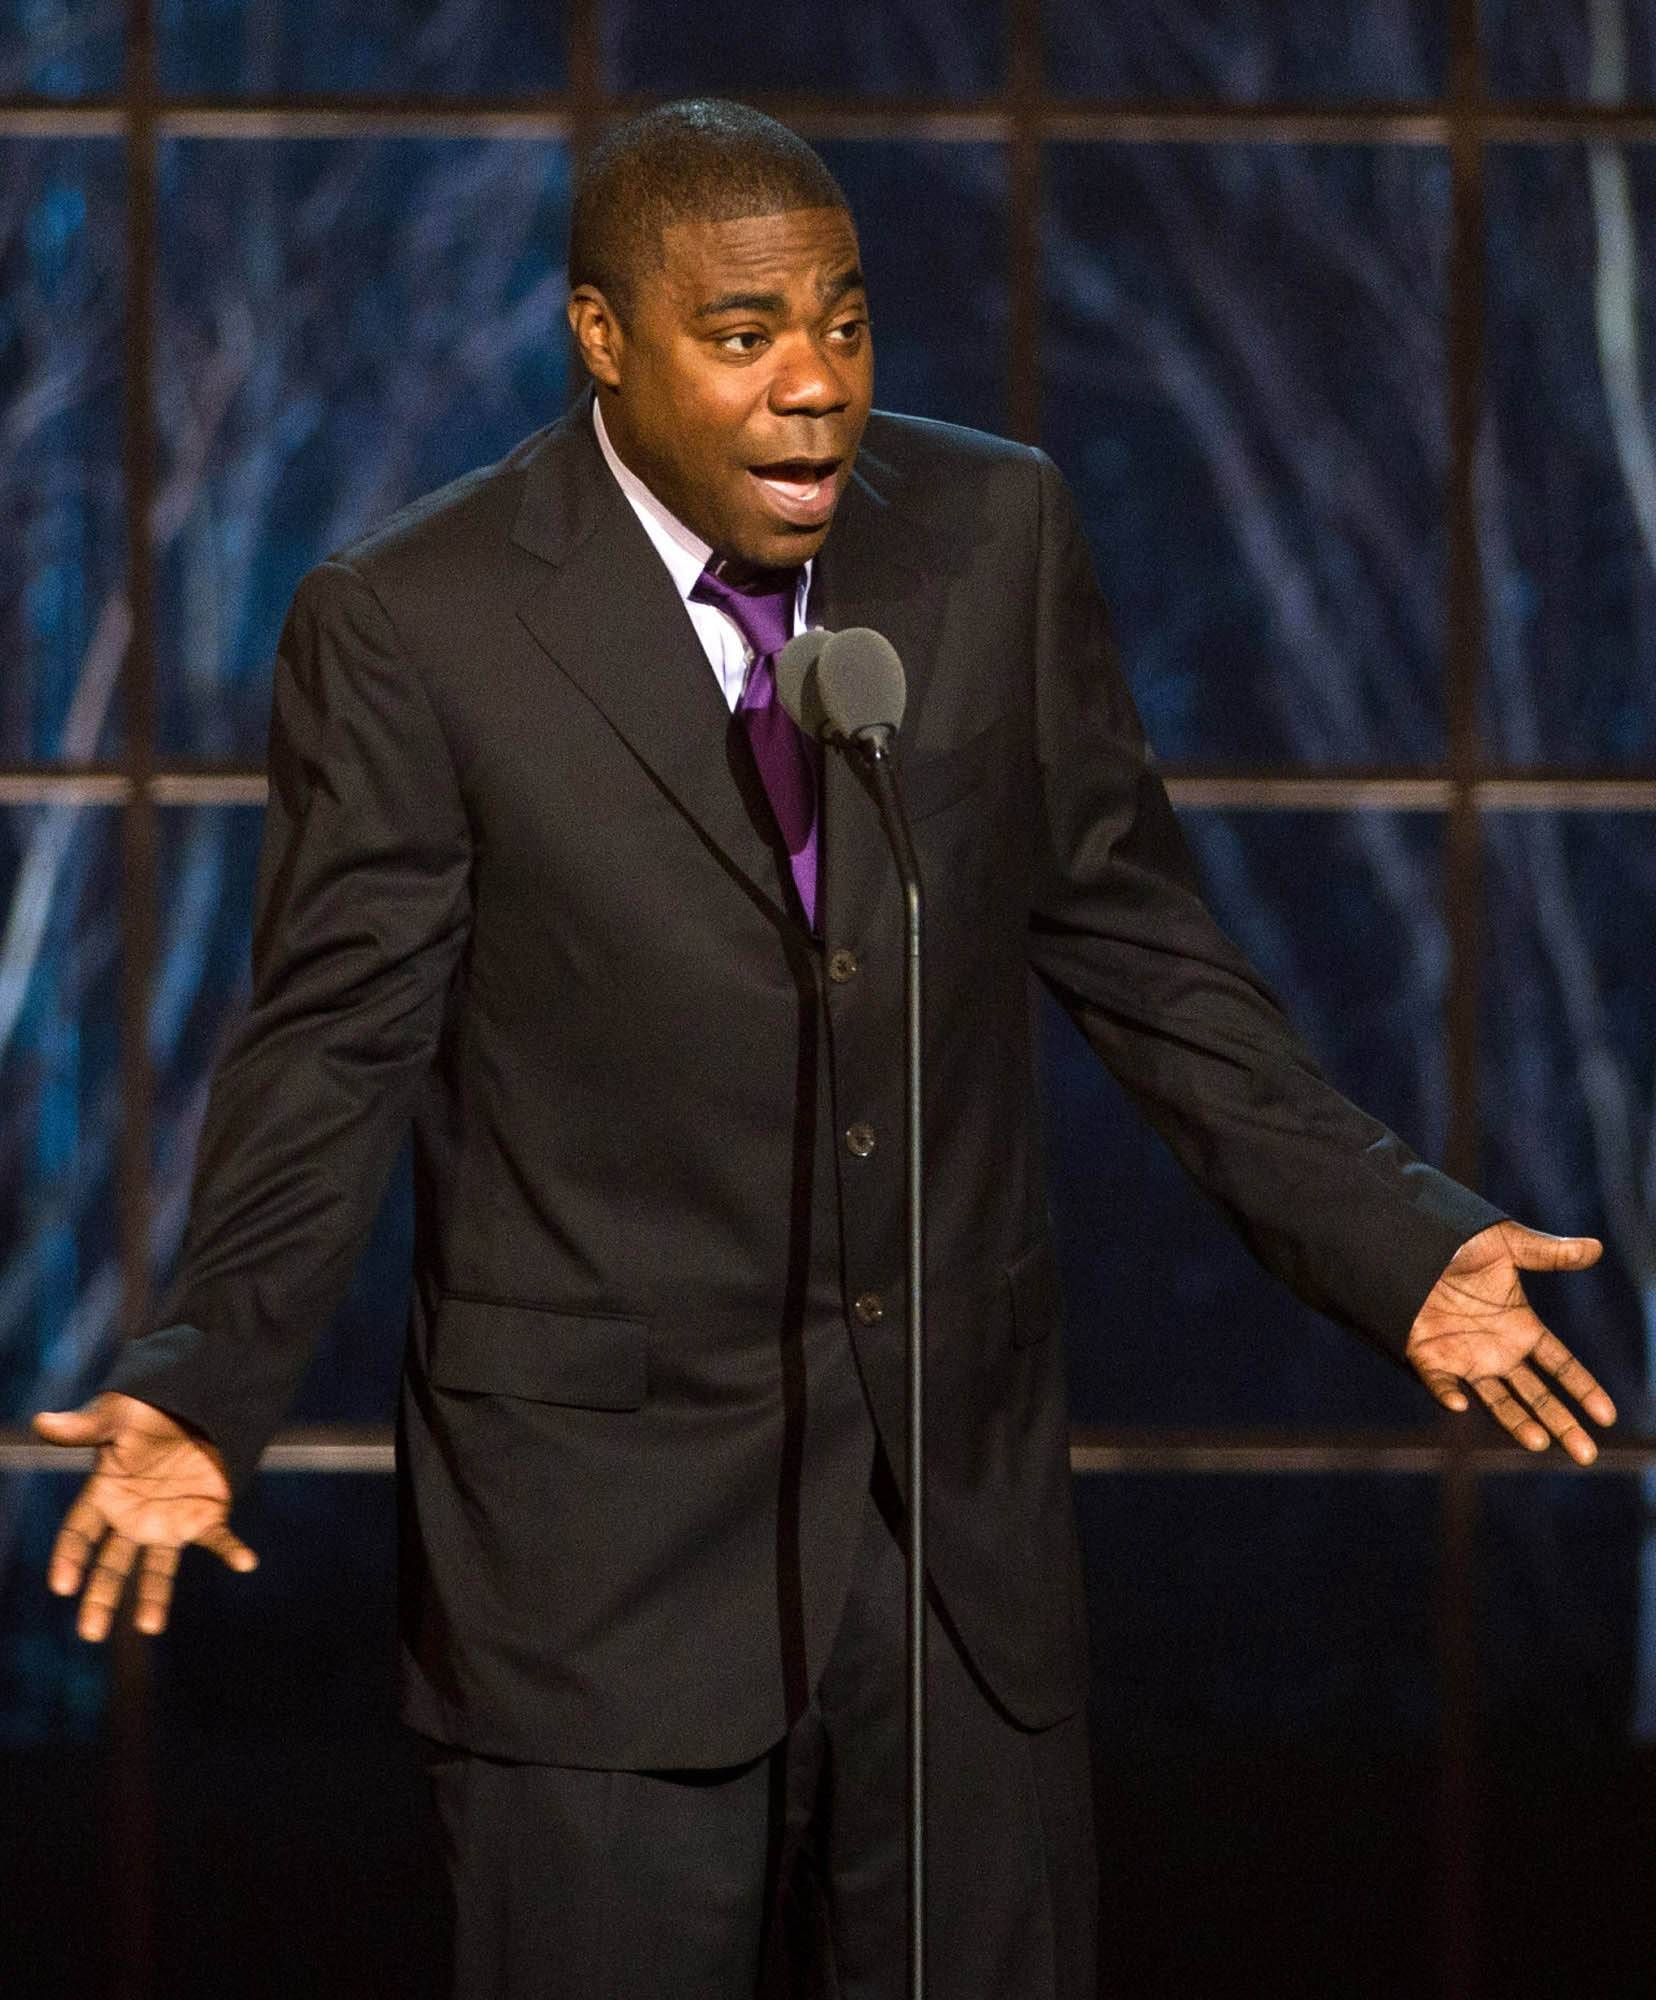 Tracy Morgan is in trouble again with jokes he has made about the disabled.